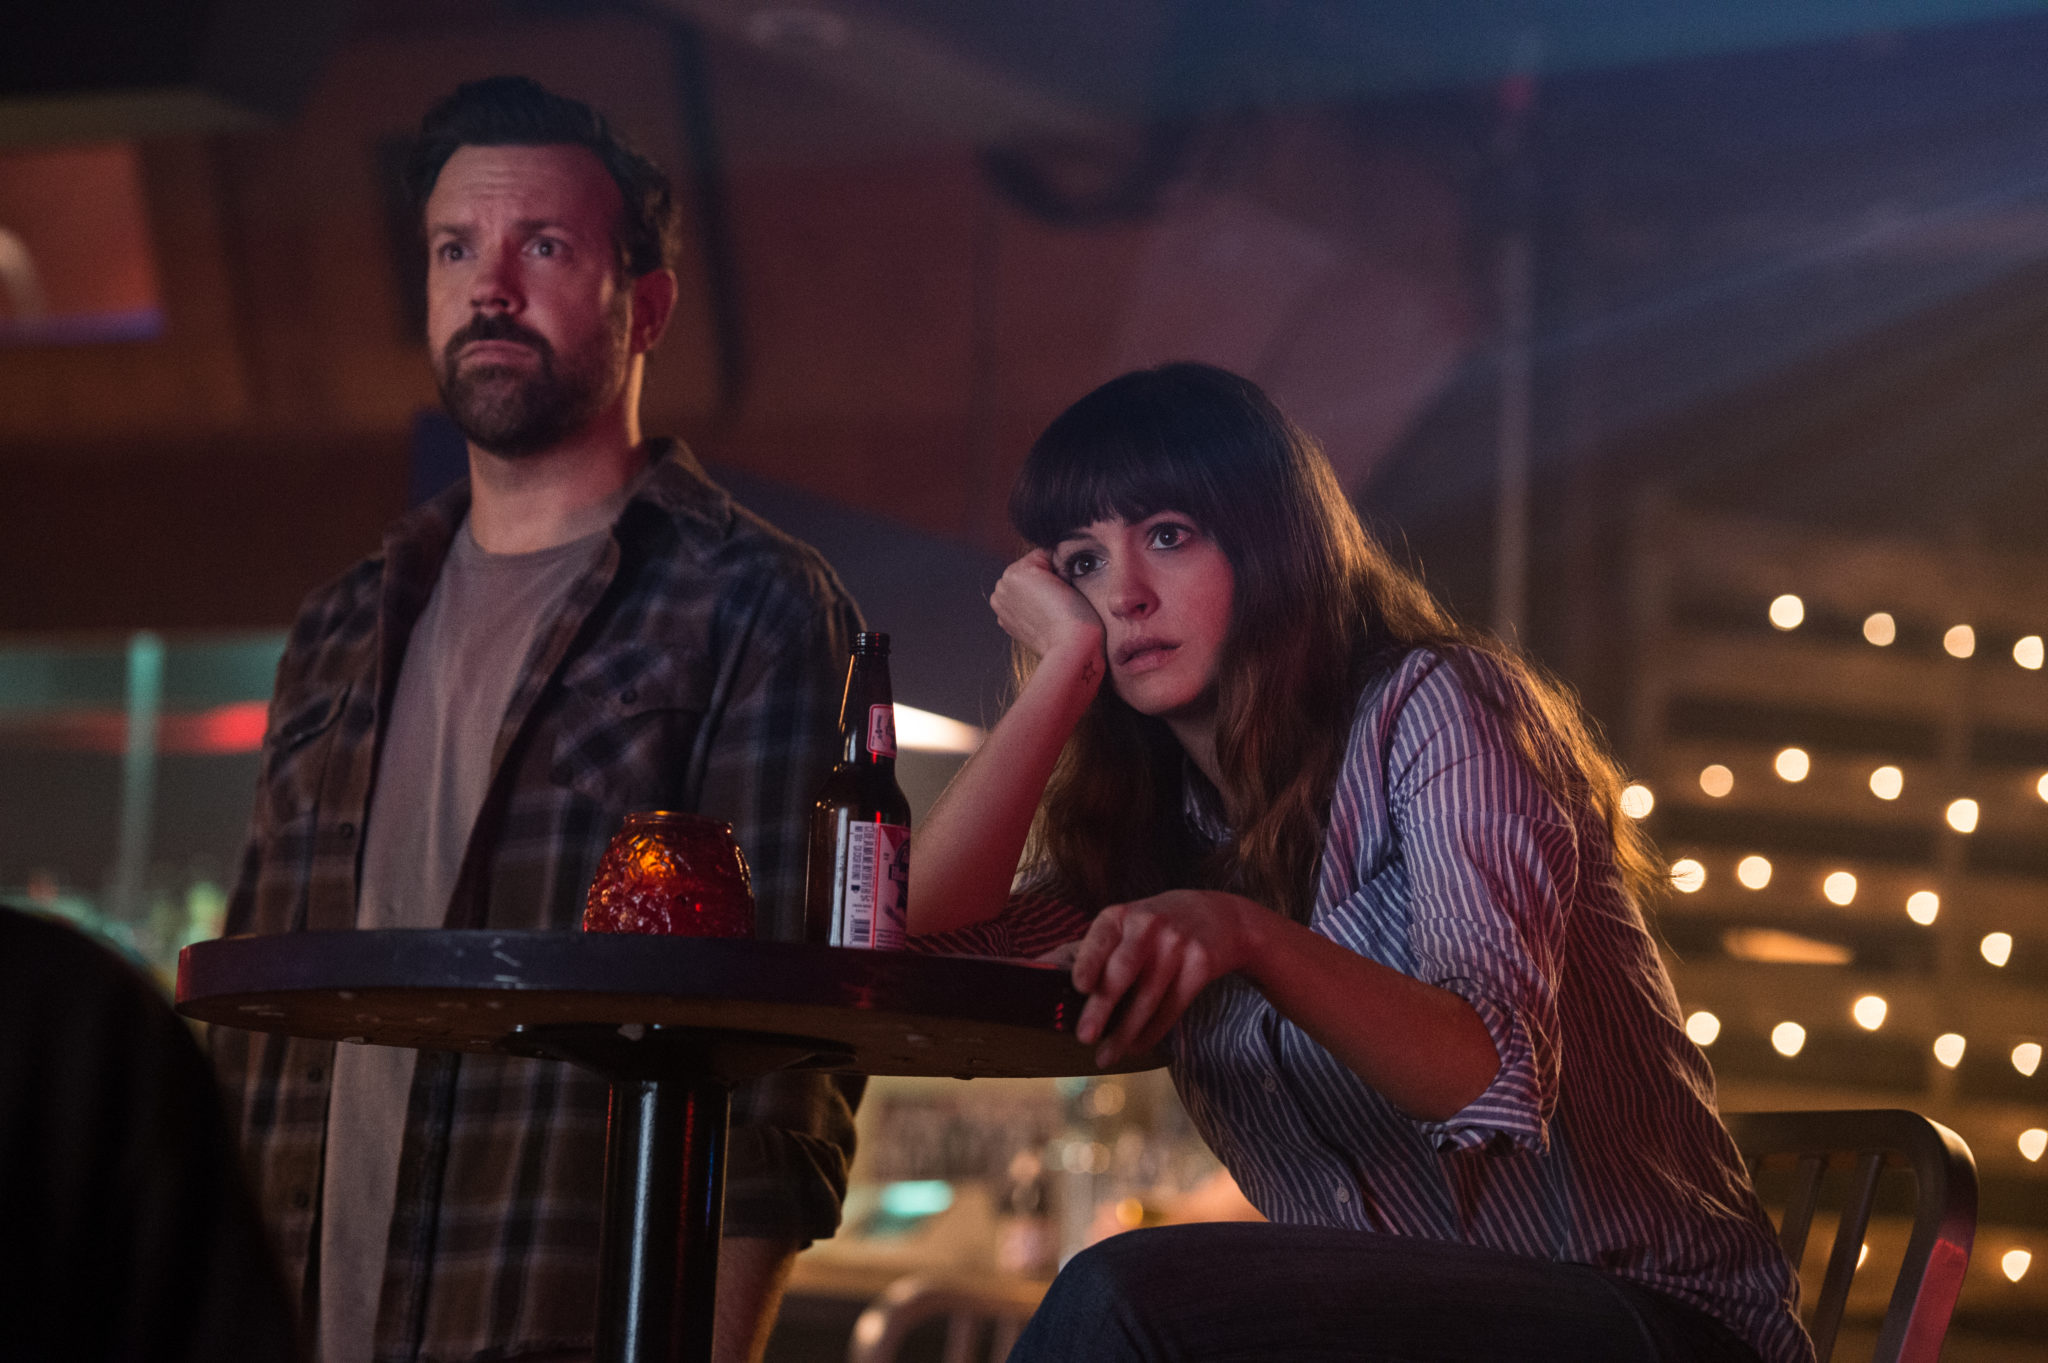 Colossal-Review-Film-2017-Cover-Image